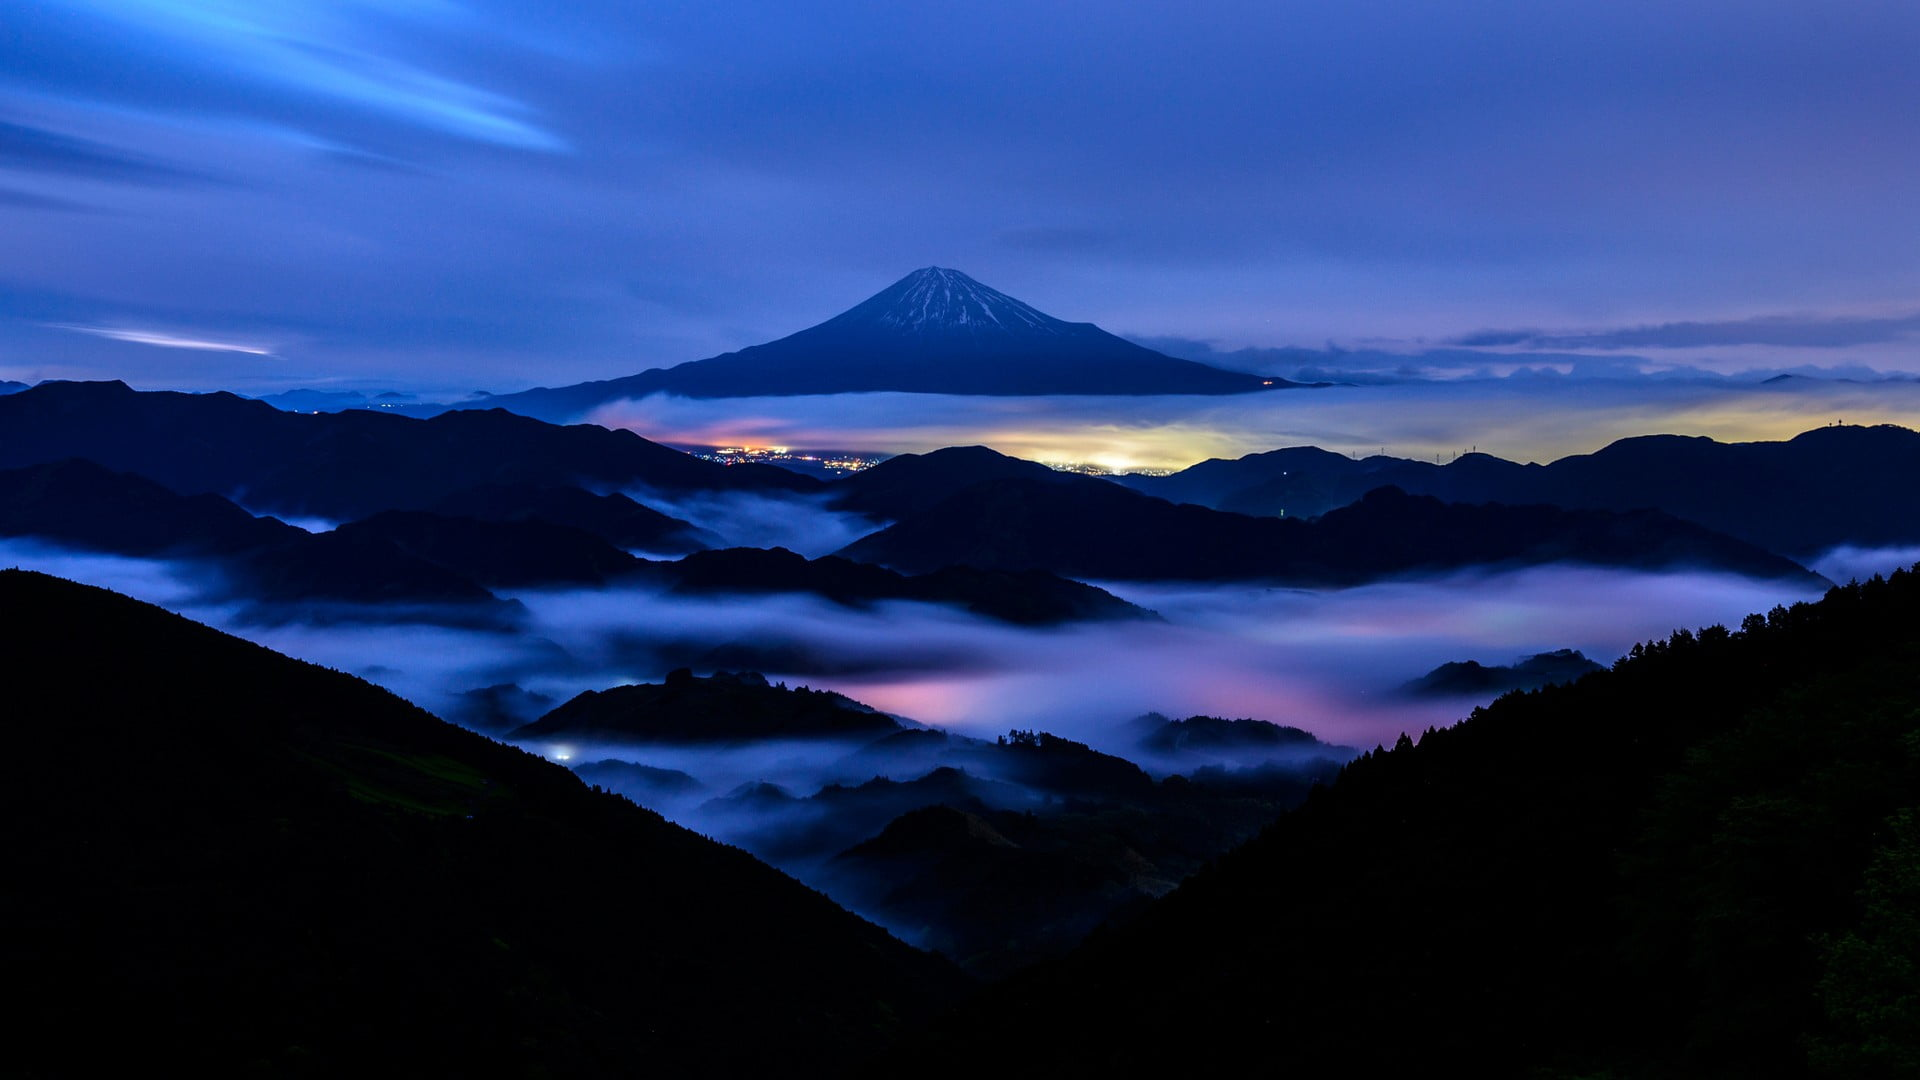 Silhouette Of Mountain, Nature, Landscape, Mountains, - Mount Fuji , HD Wallpaper & Backgrounds